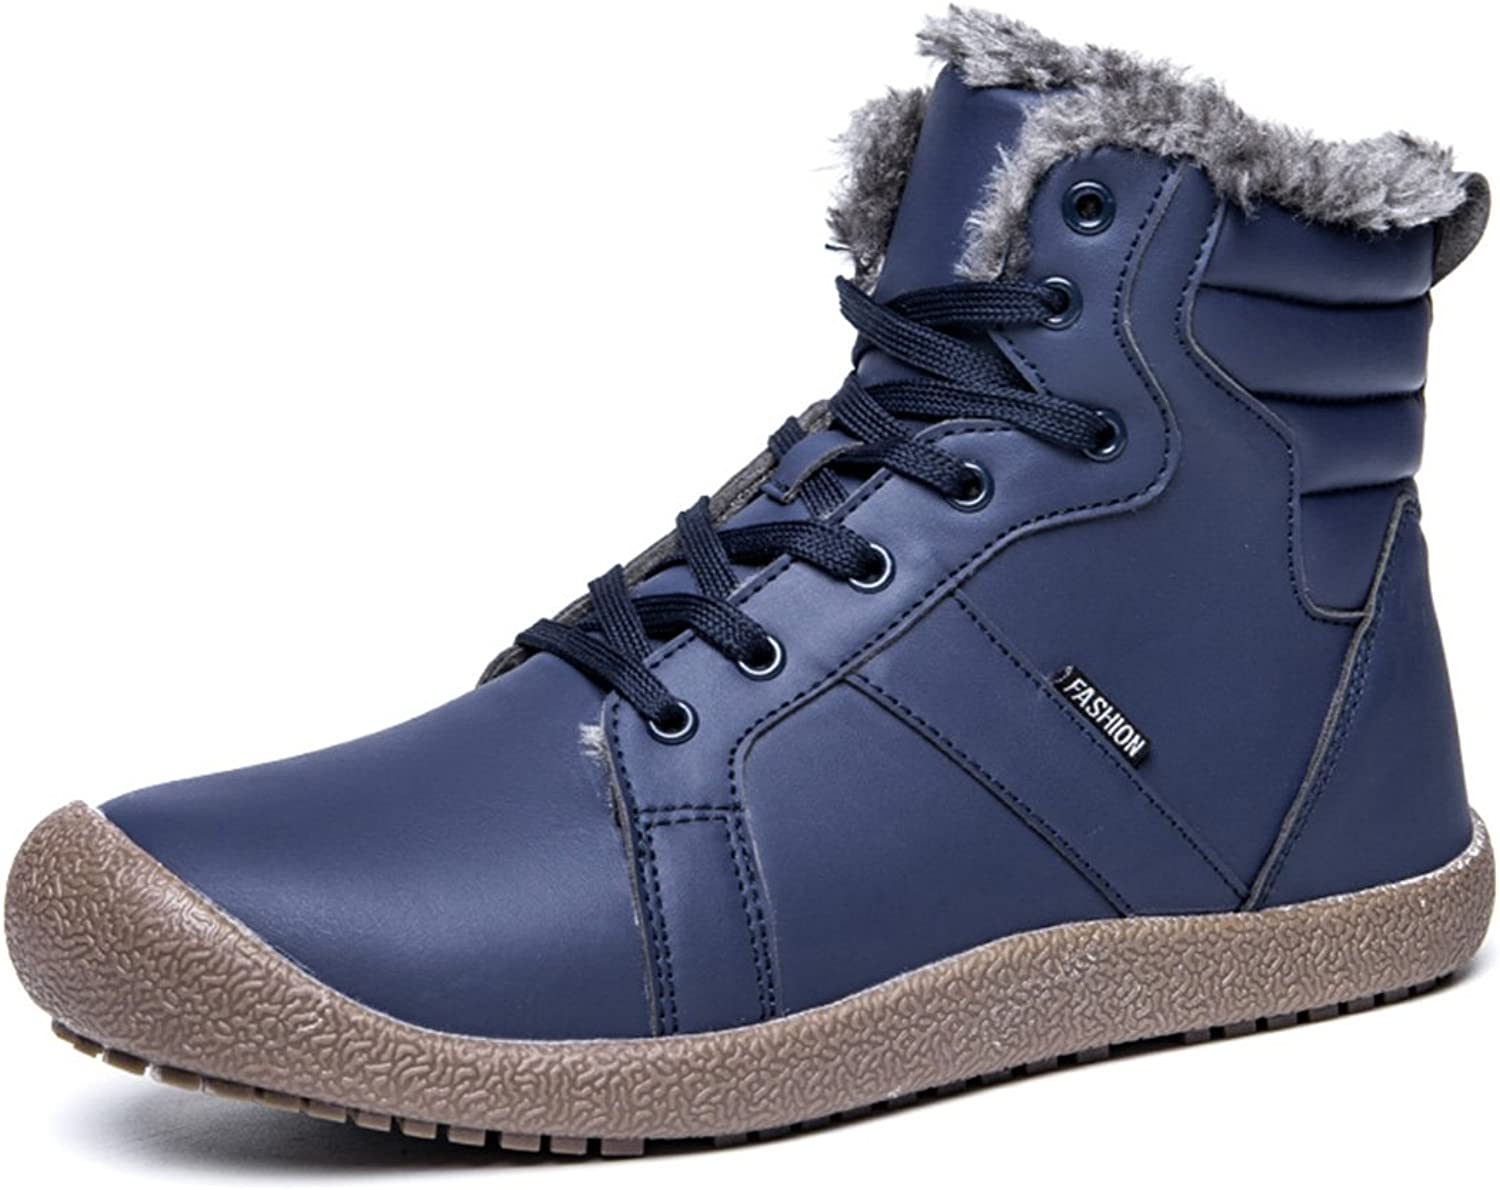 XIDISO Men's Waterproof Work Boots Insulated Rubber Outsole